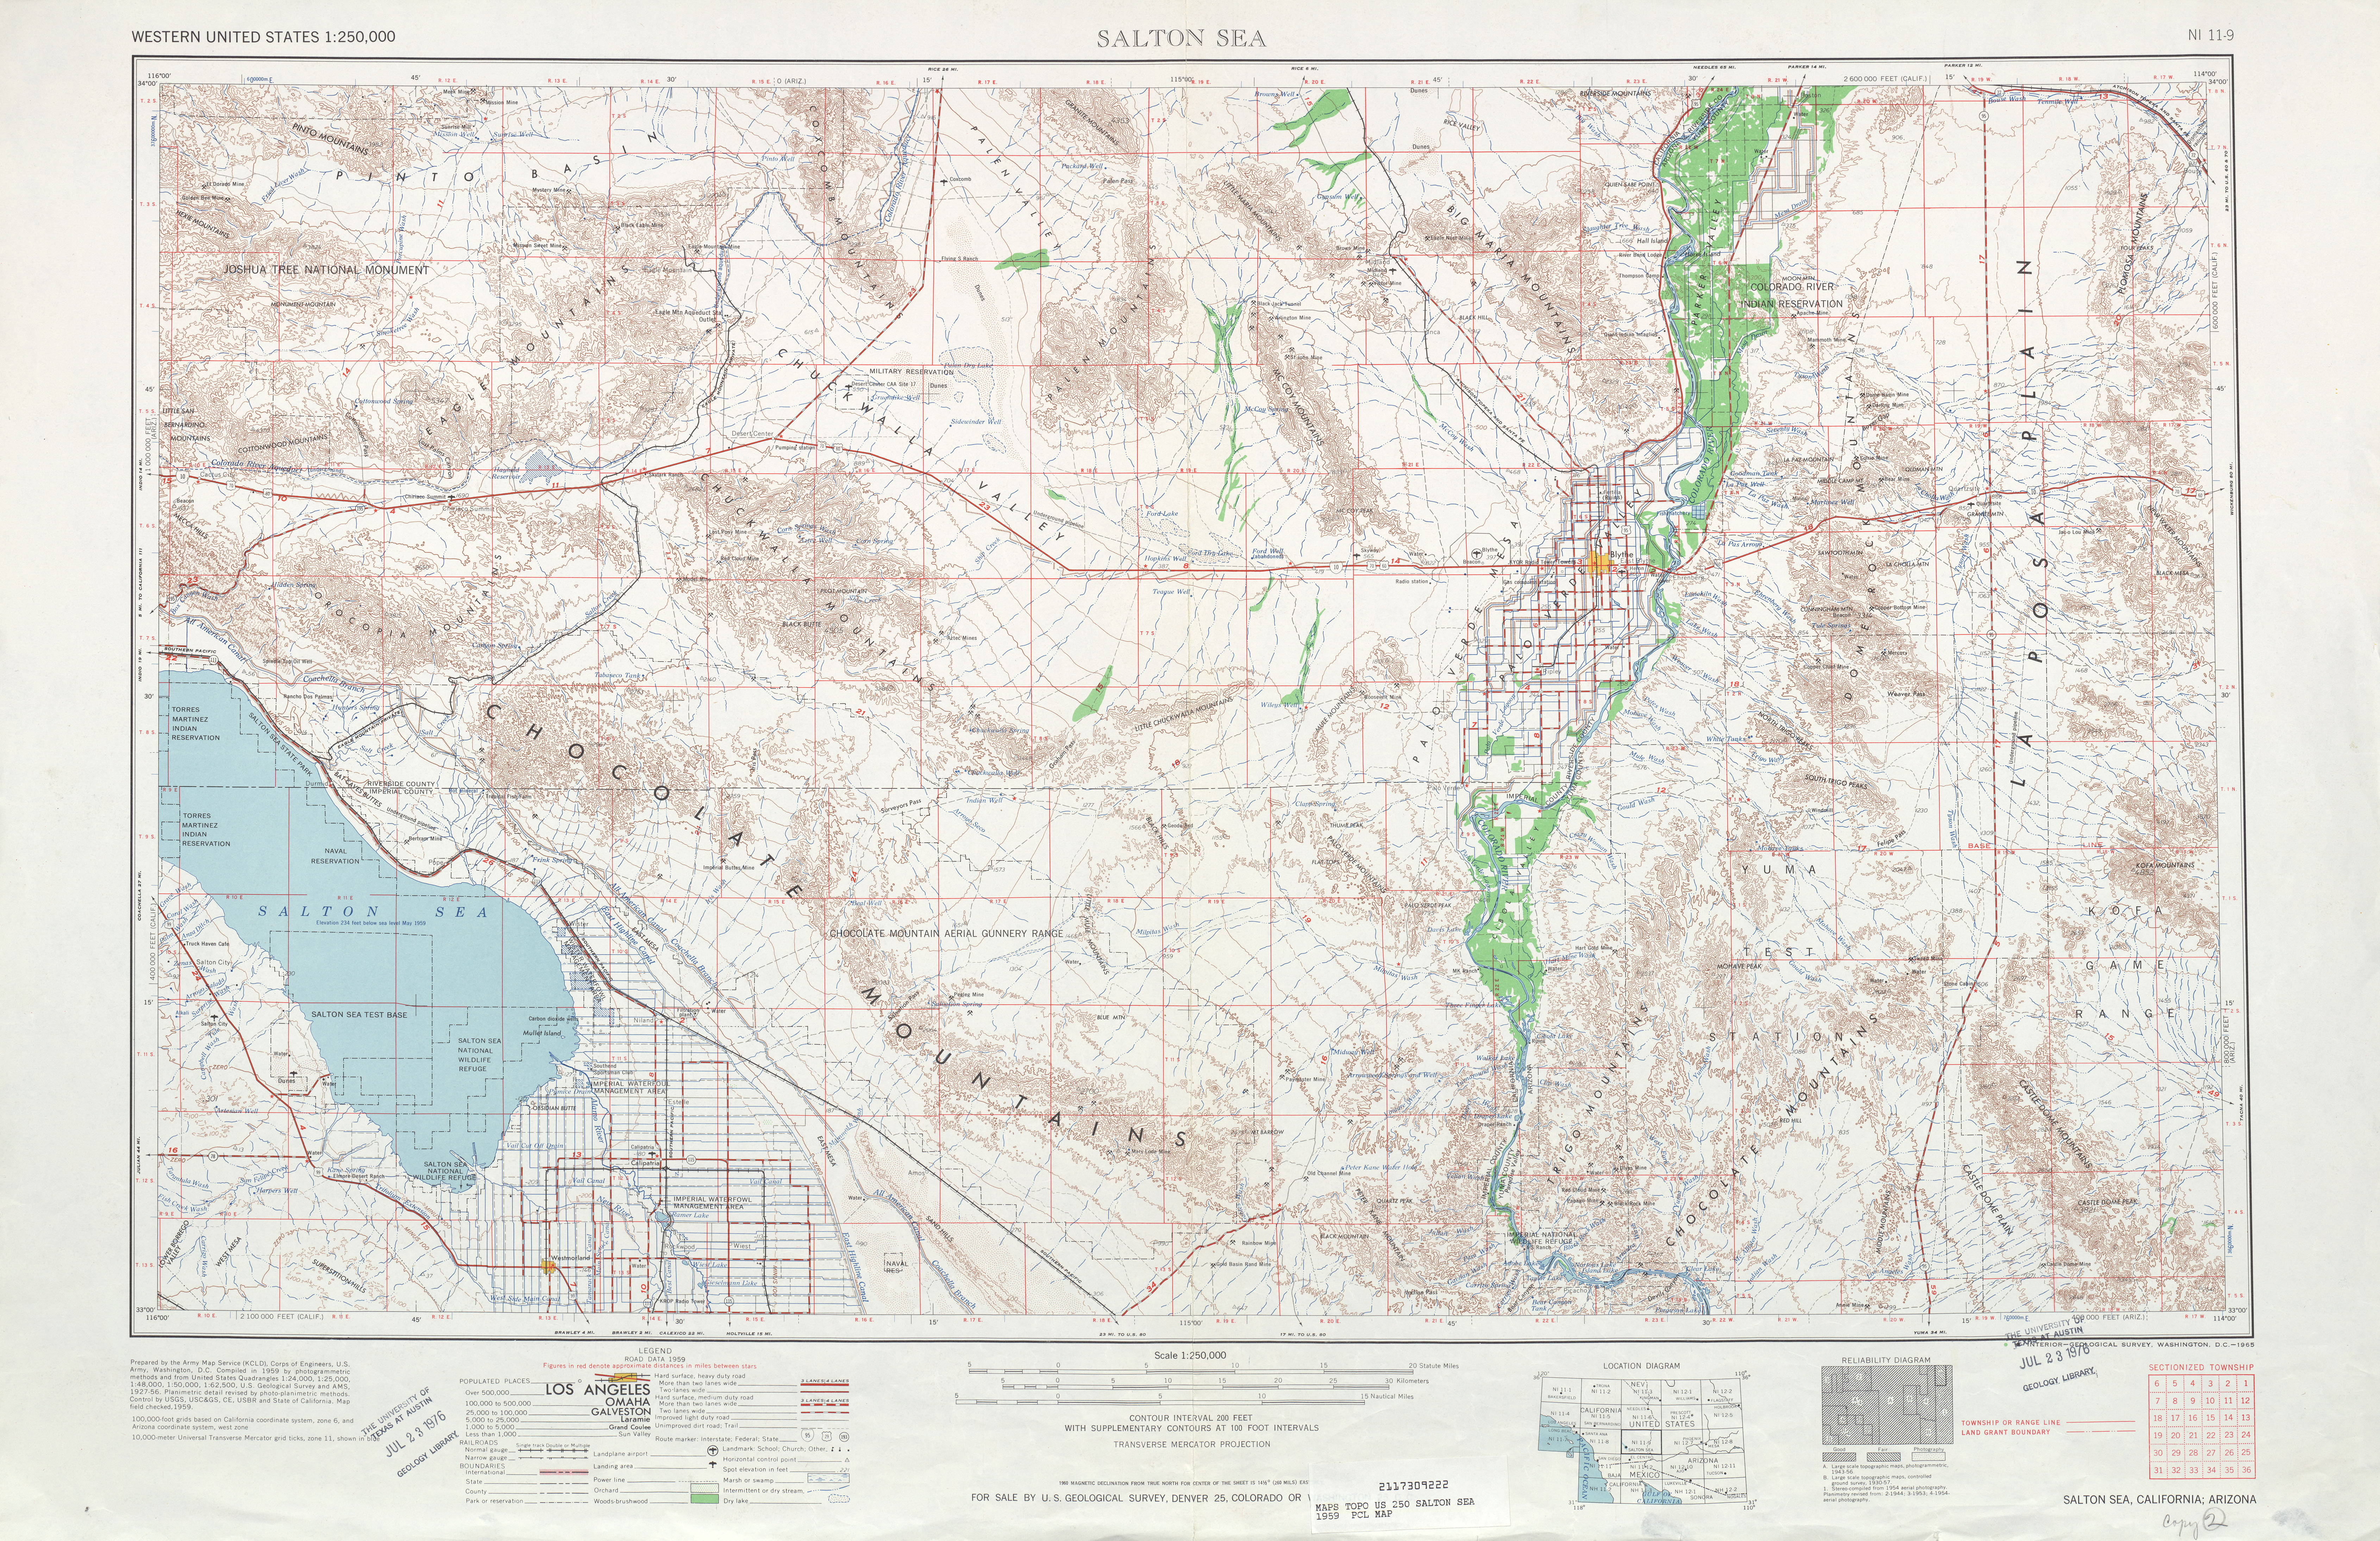 Salton Sea Topographic Map Sheet, United States 1959